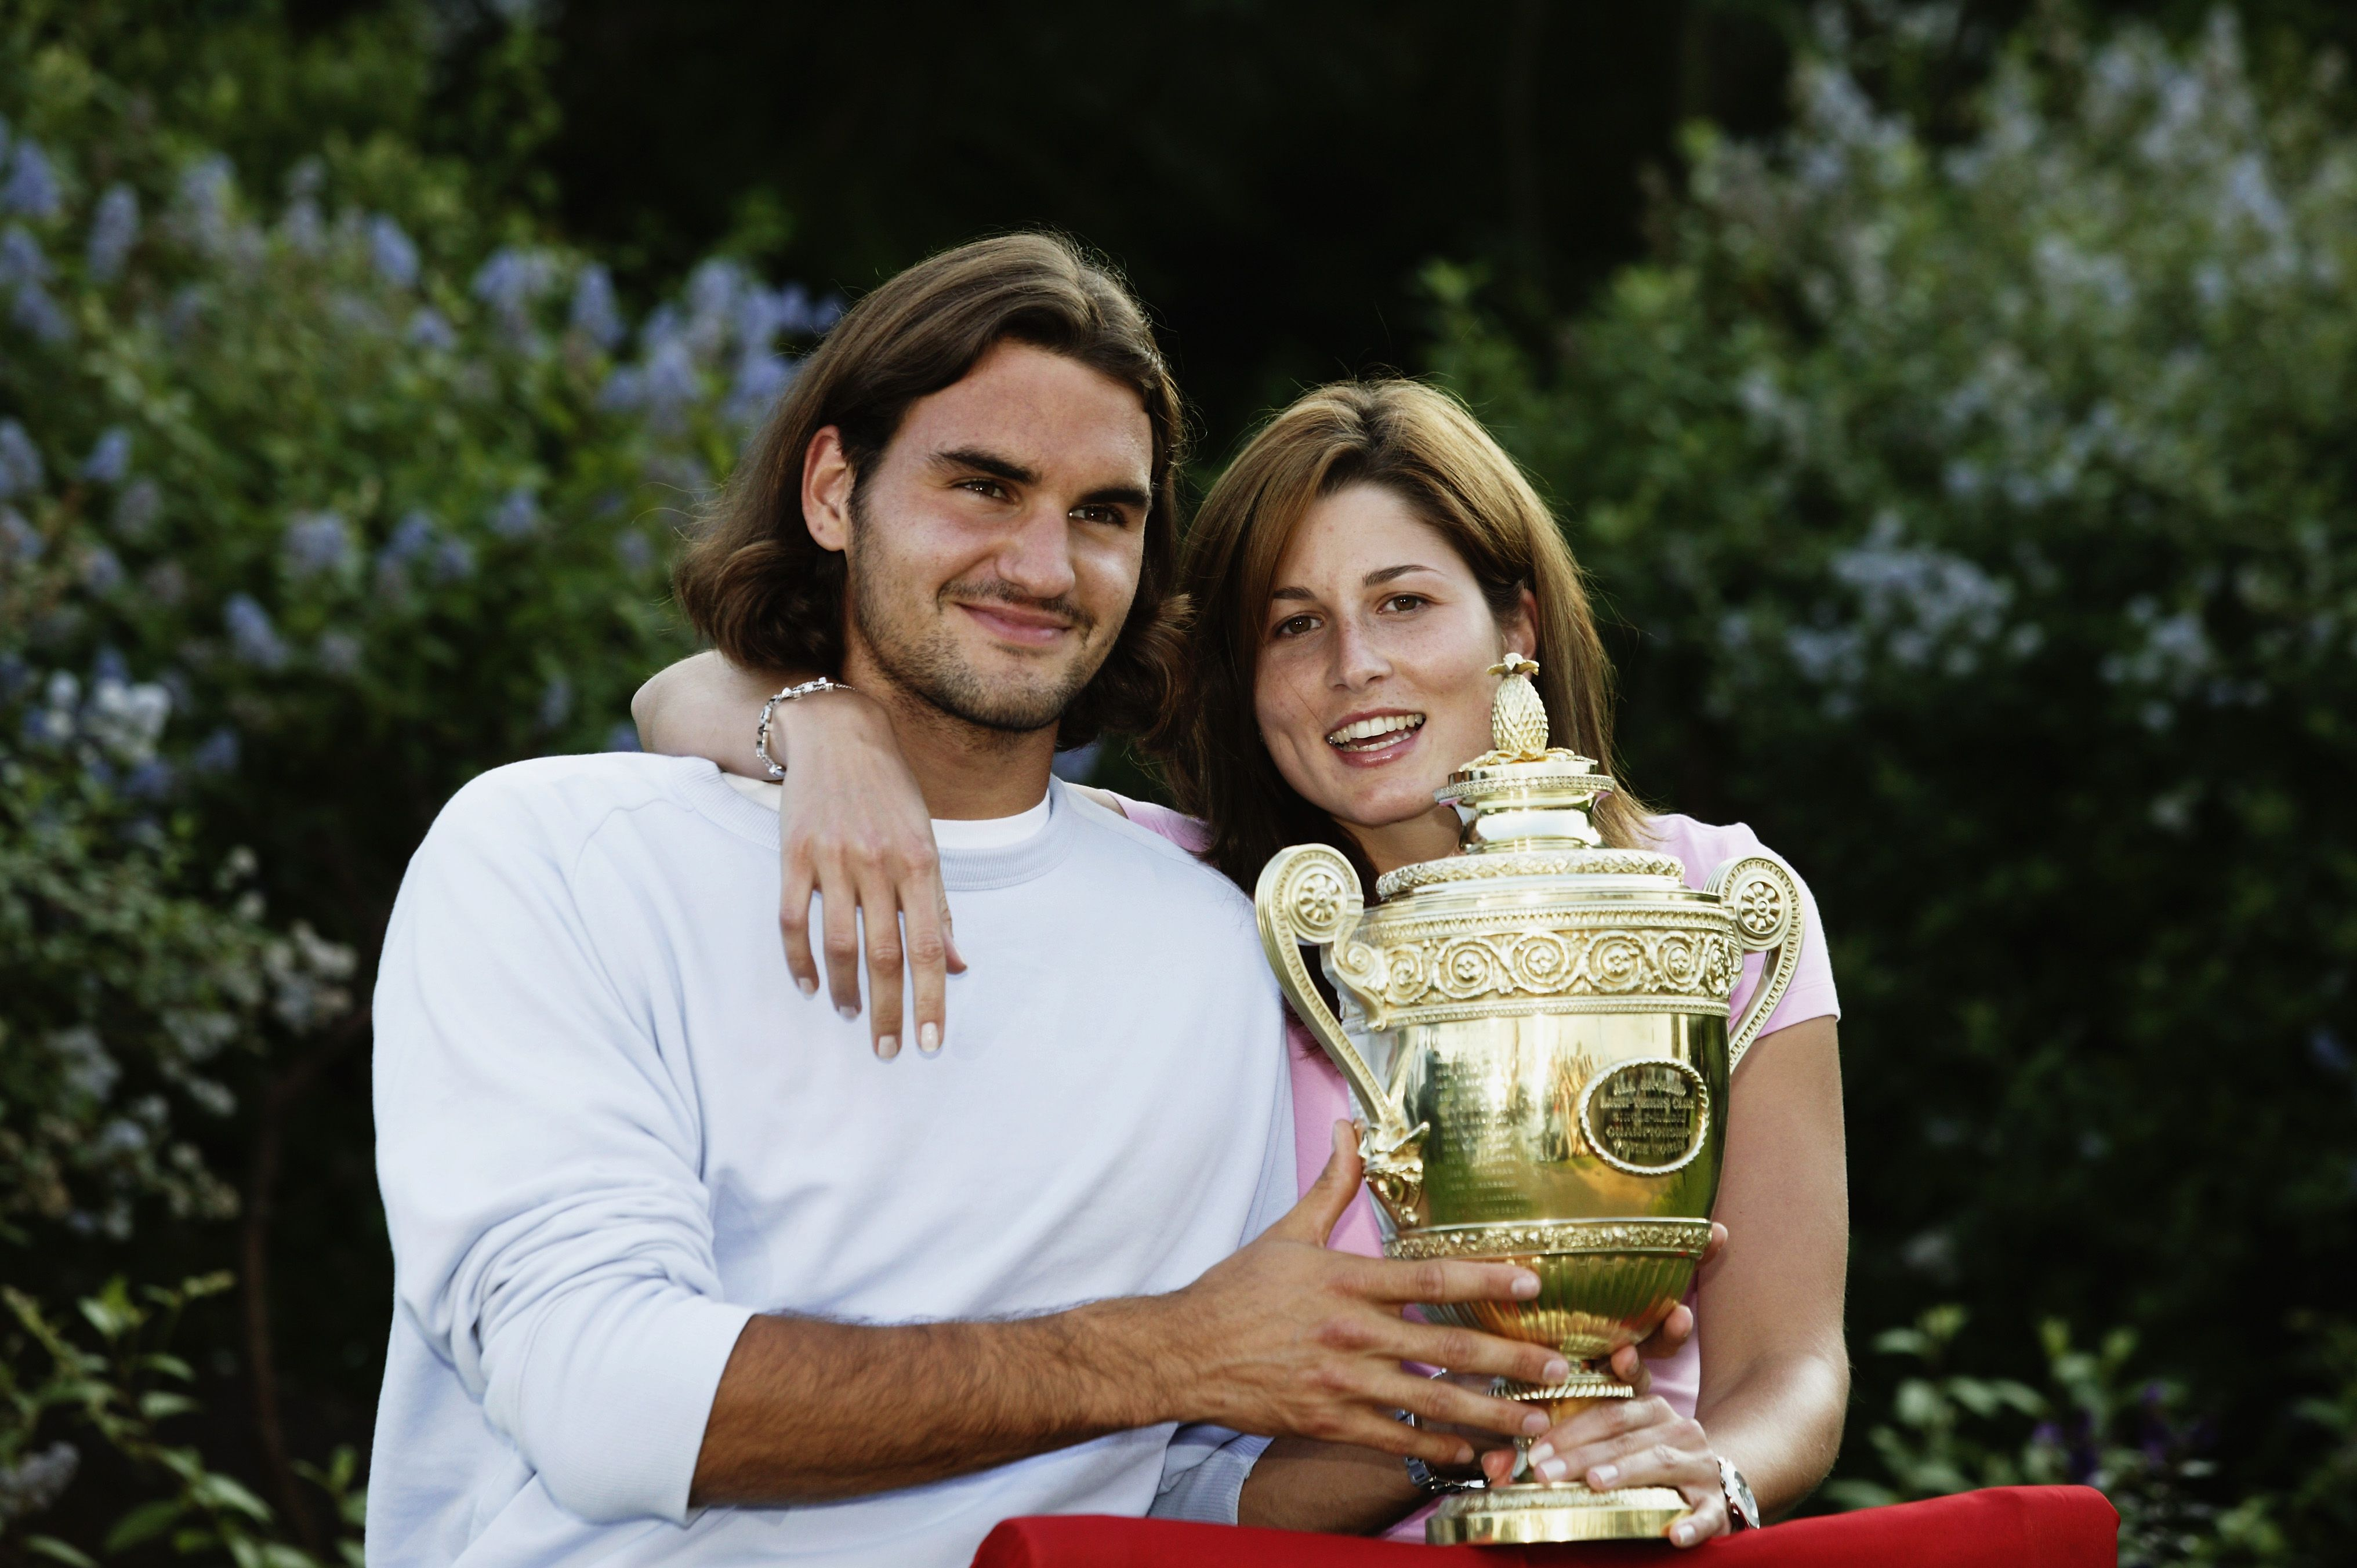 Roger Federer and Mirka Federer after his victory at the Wimbledon Lawn Tennis Championships in 2003 in London | Source: Getty Images